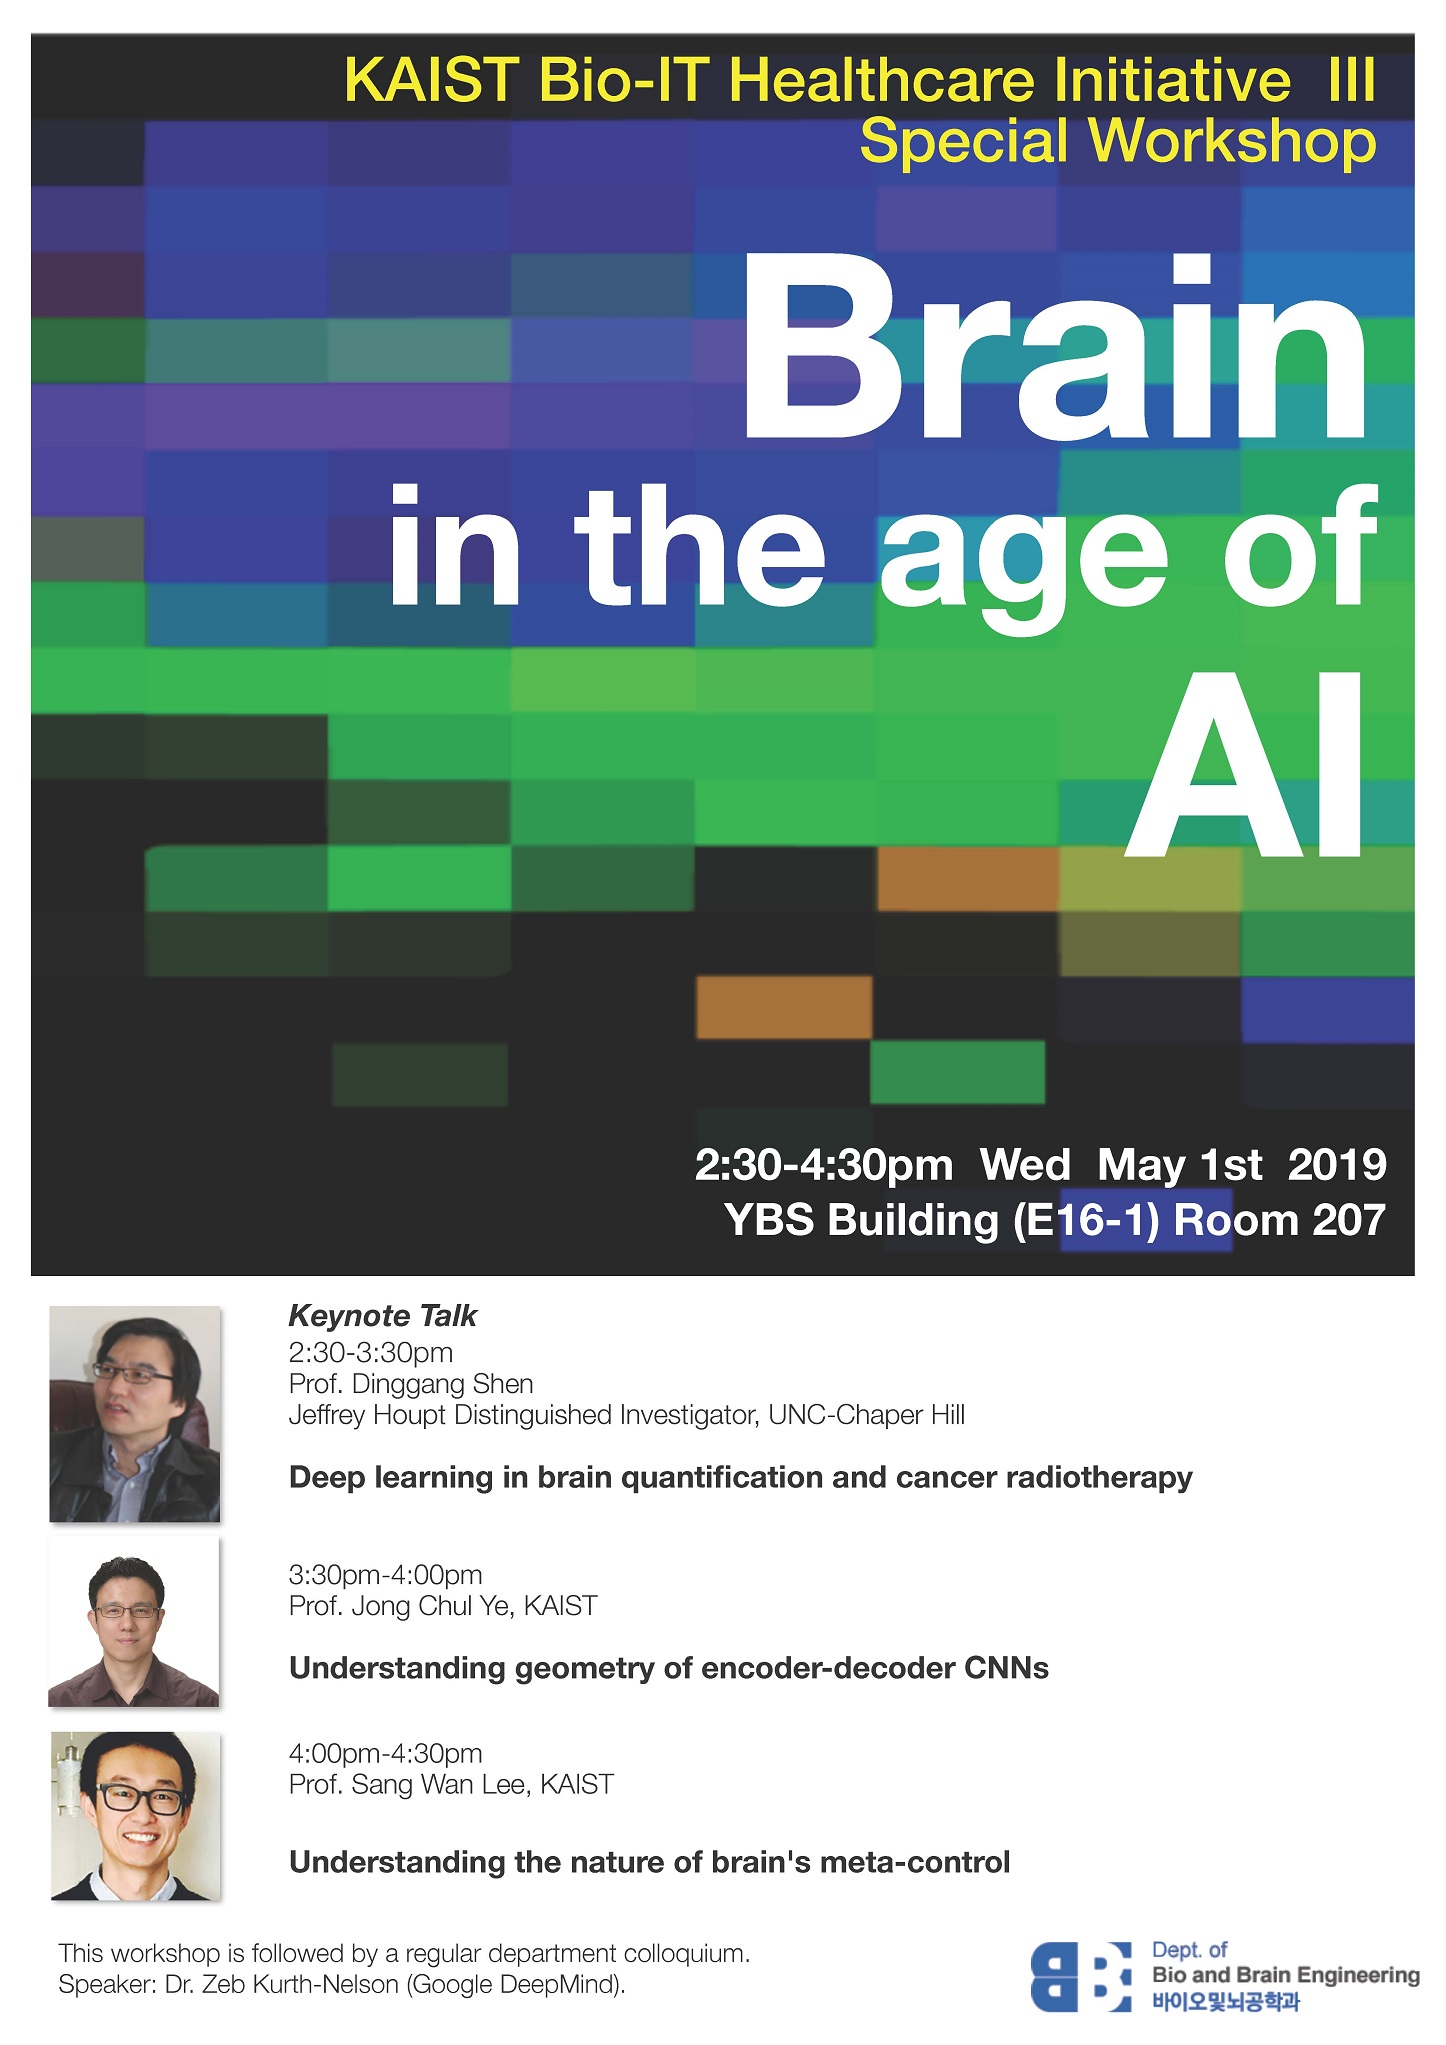 KAIST Bio-IT Healthcare Initiative III - Special Workshop(Brain in the age of AI)_email.jpg